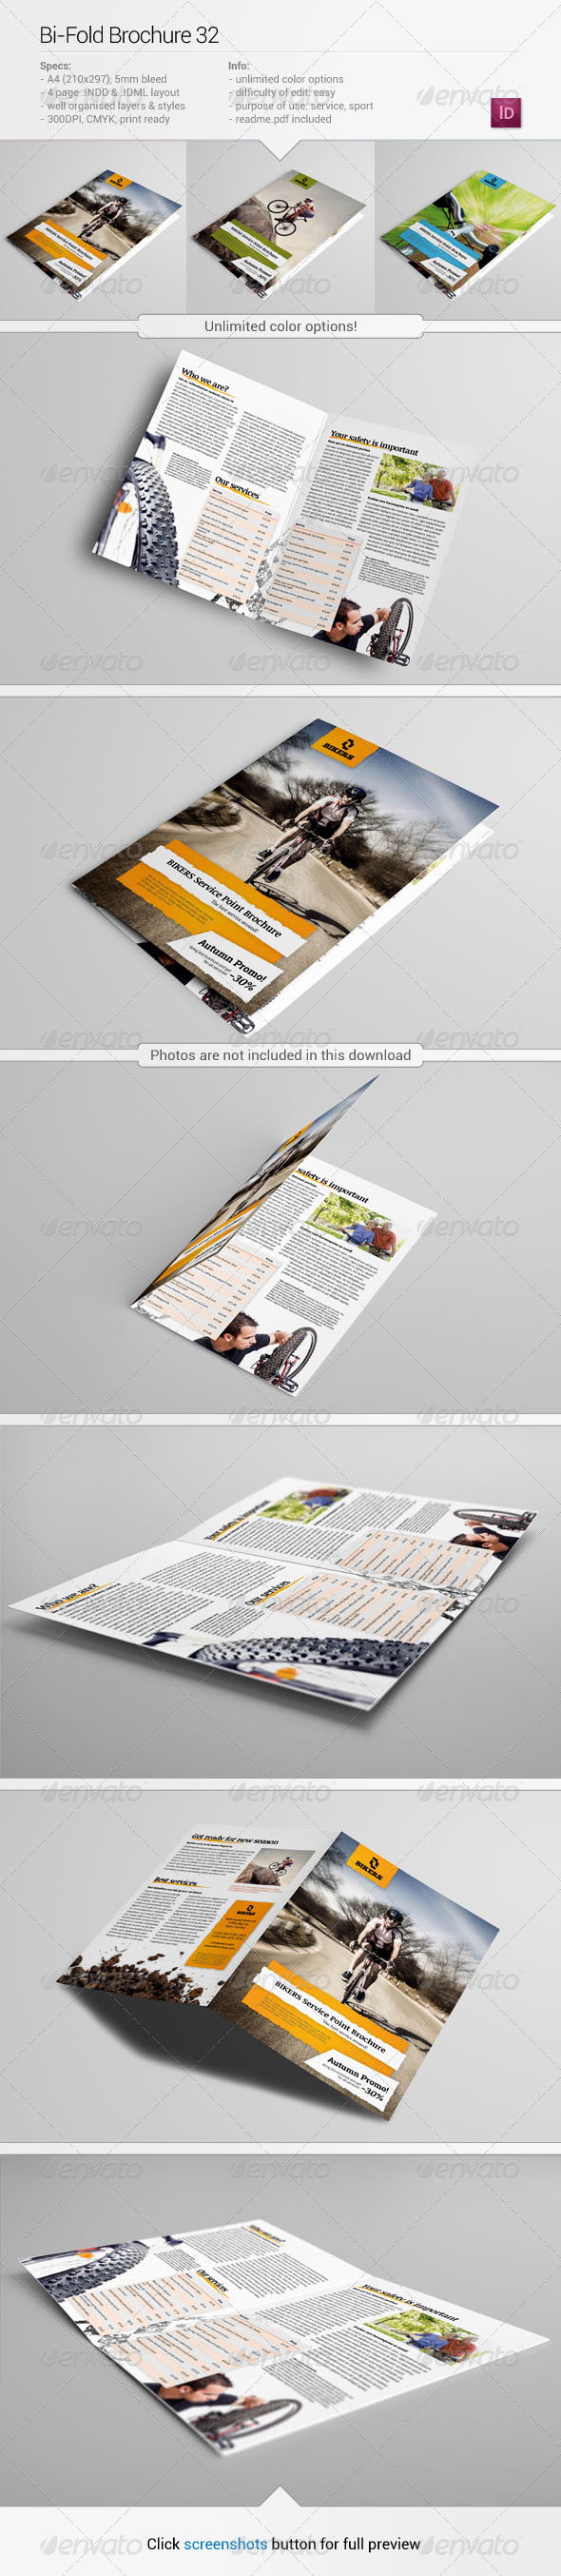 GraphicRiver Bi-Fold Brochure 32 5871081